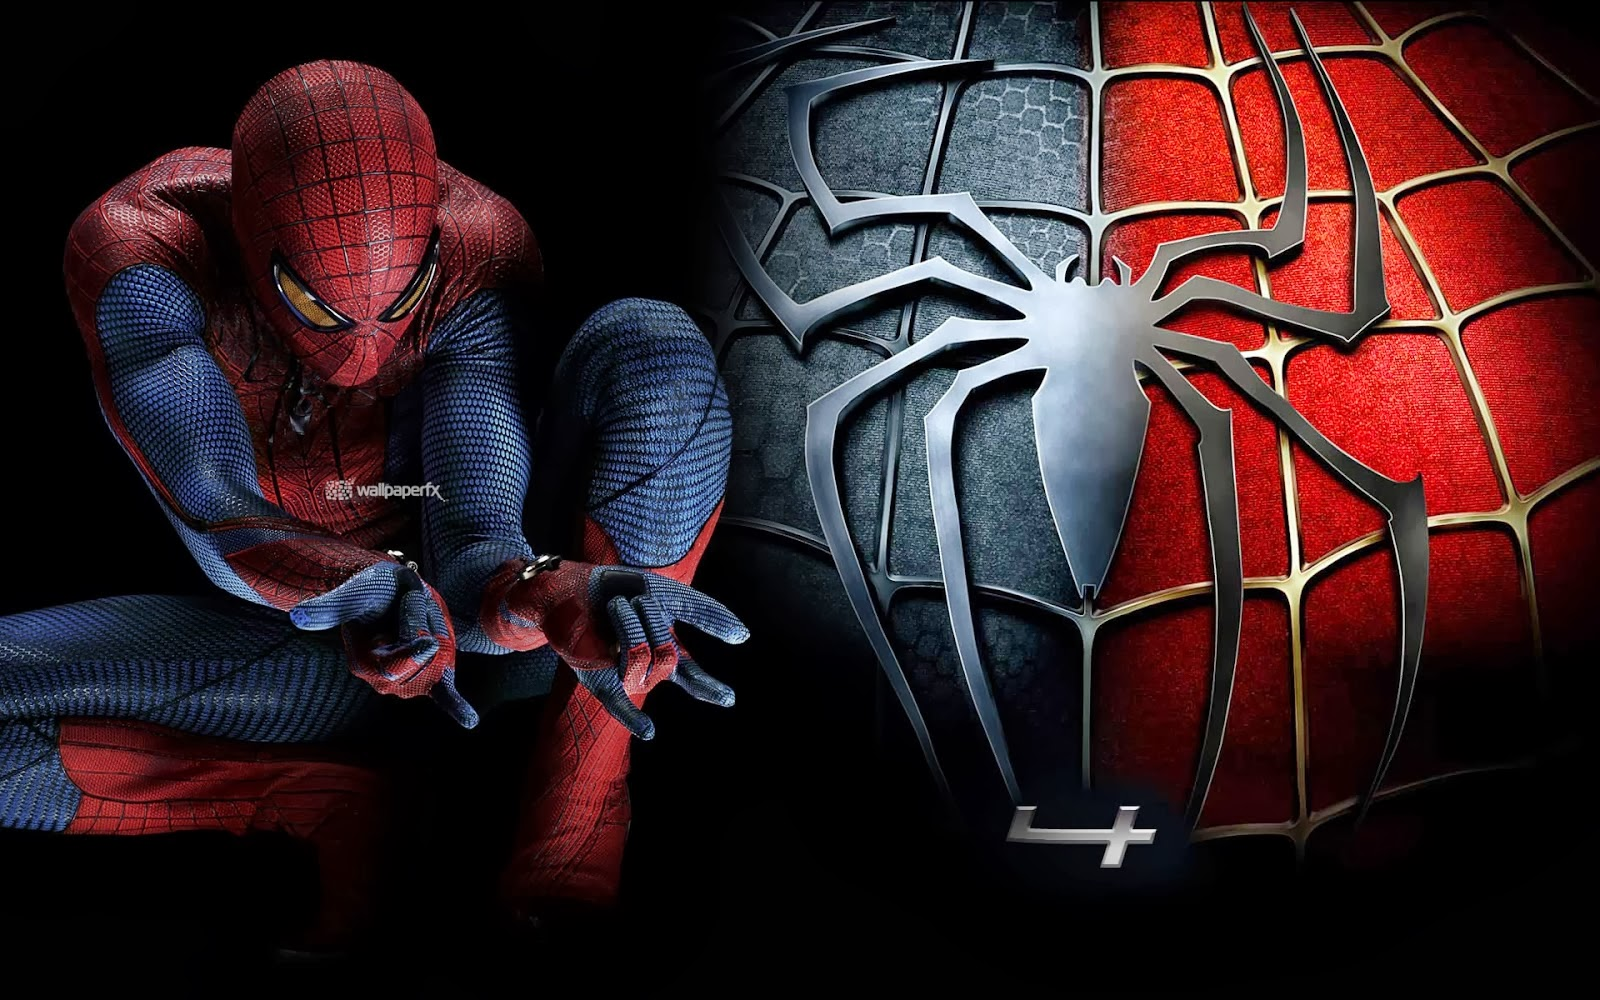 spiderman 4 hd wallpapers wusa 9 wallpaperssea andpop. Black Bedroom Furniture Sets. Home Design Ideas